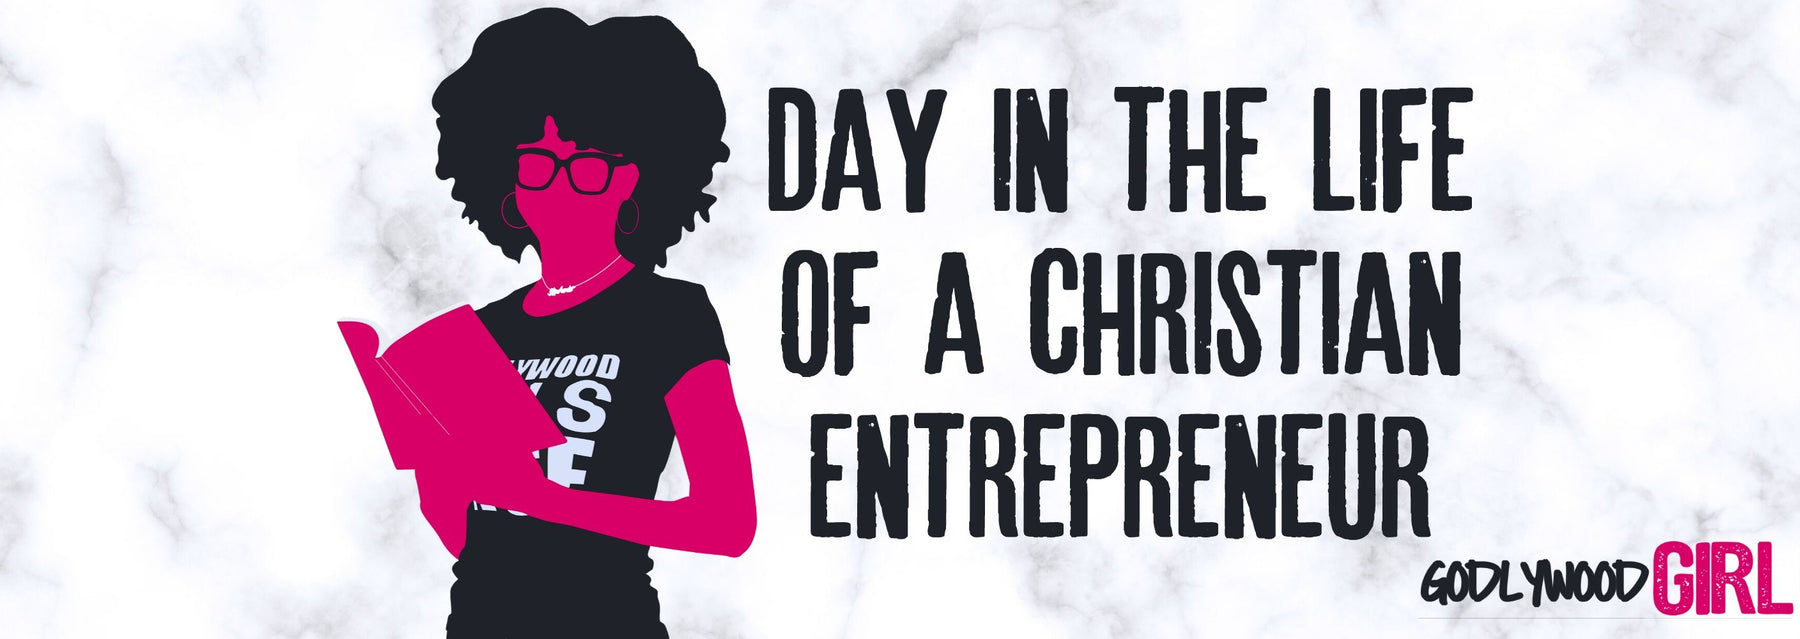 Day In The Life Of A Christian Entrepreneur Ep.7 | Networking Events And Quitting Social Media?